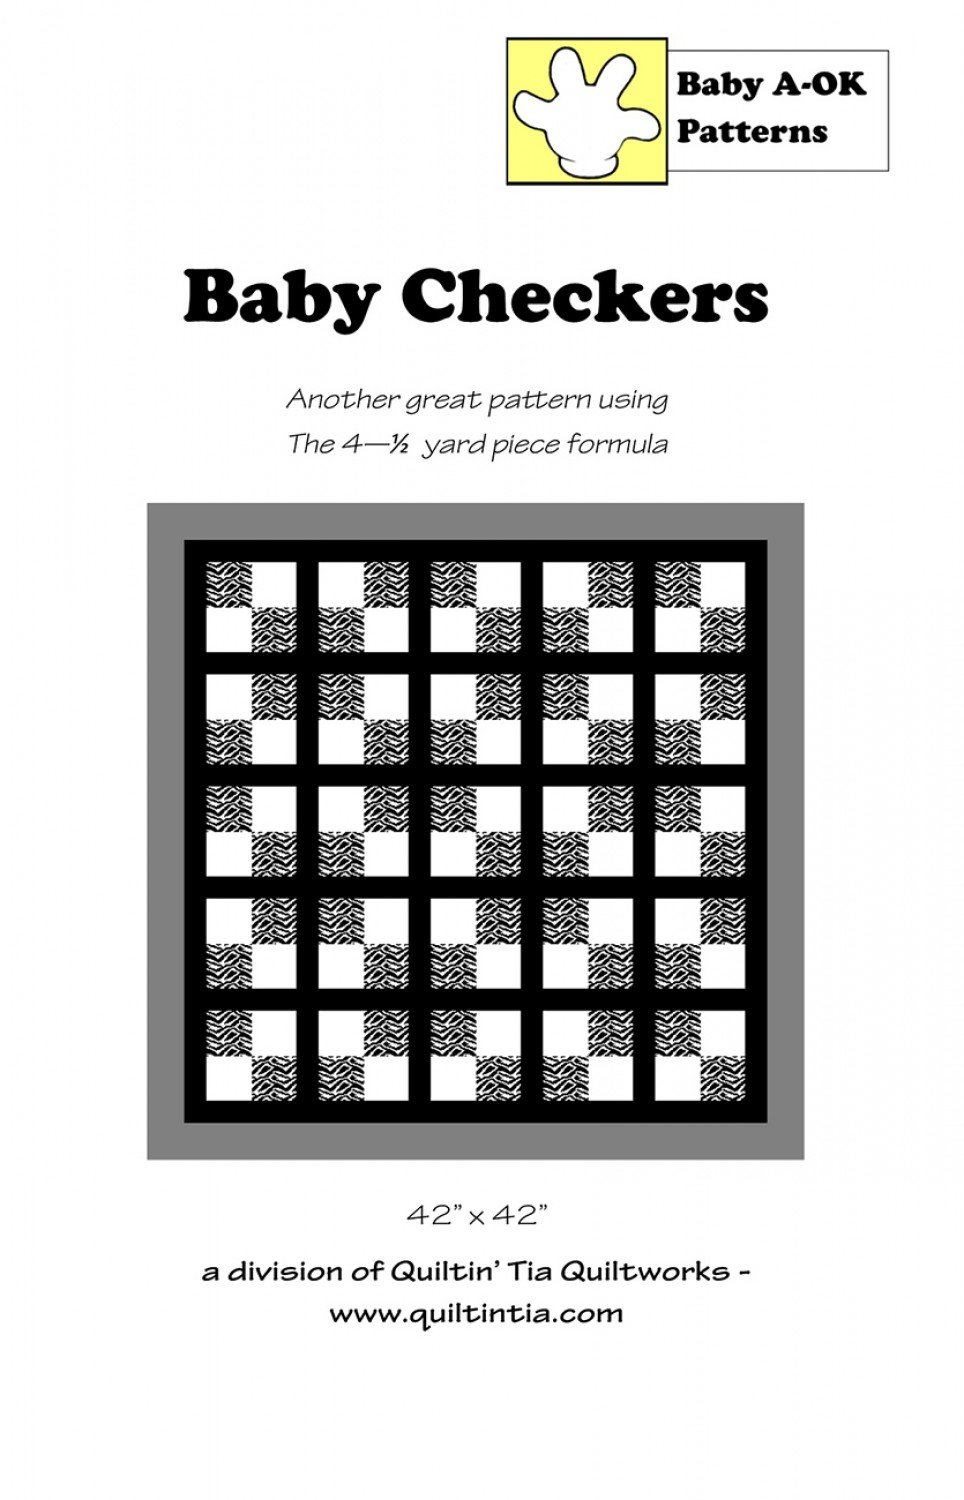 Baby Checkers Baby A-OK Pattern